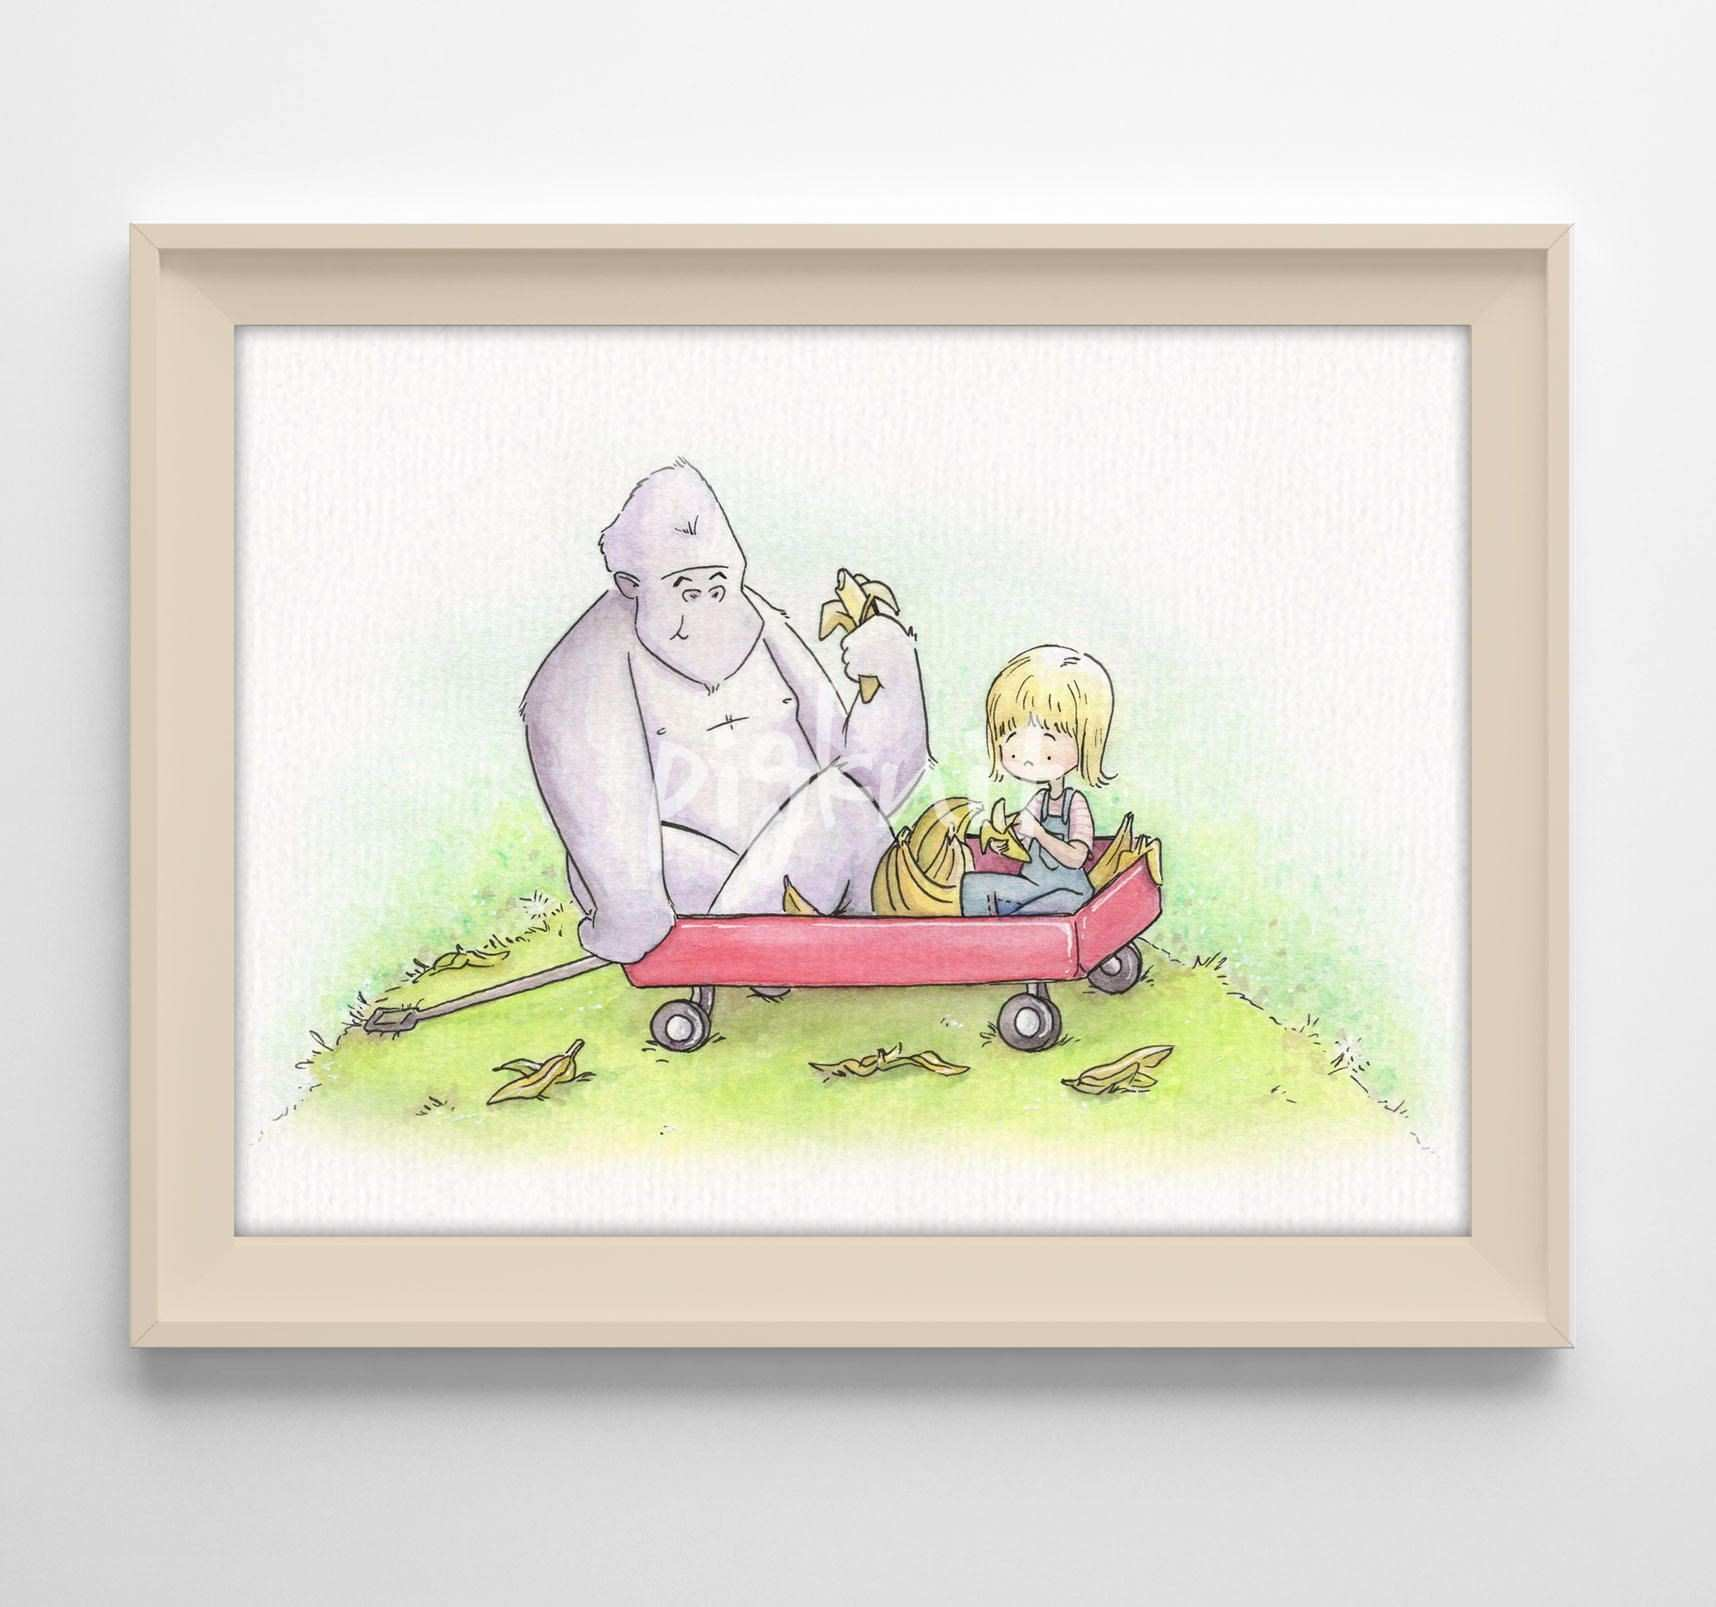 Monkey Wall Stickers Best Of Whimsical Watercolor Illustration Monkey Illustration Monkey Baby